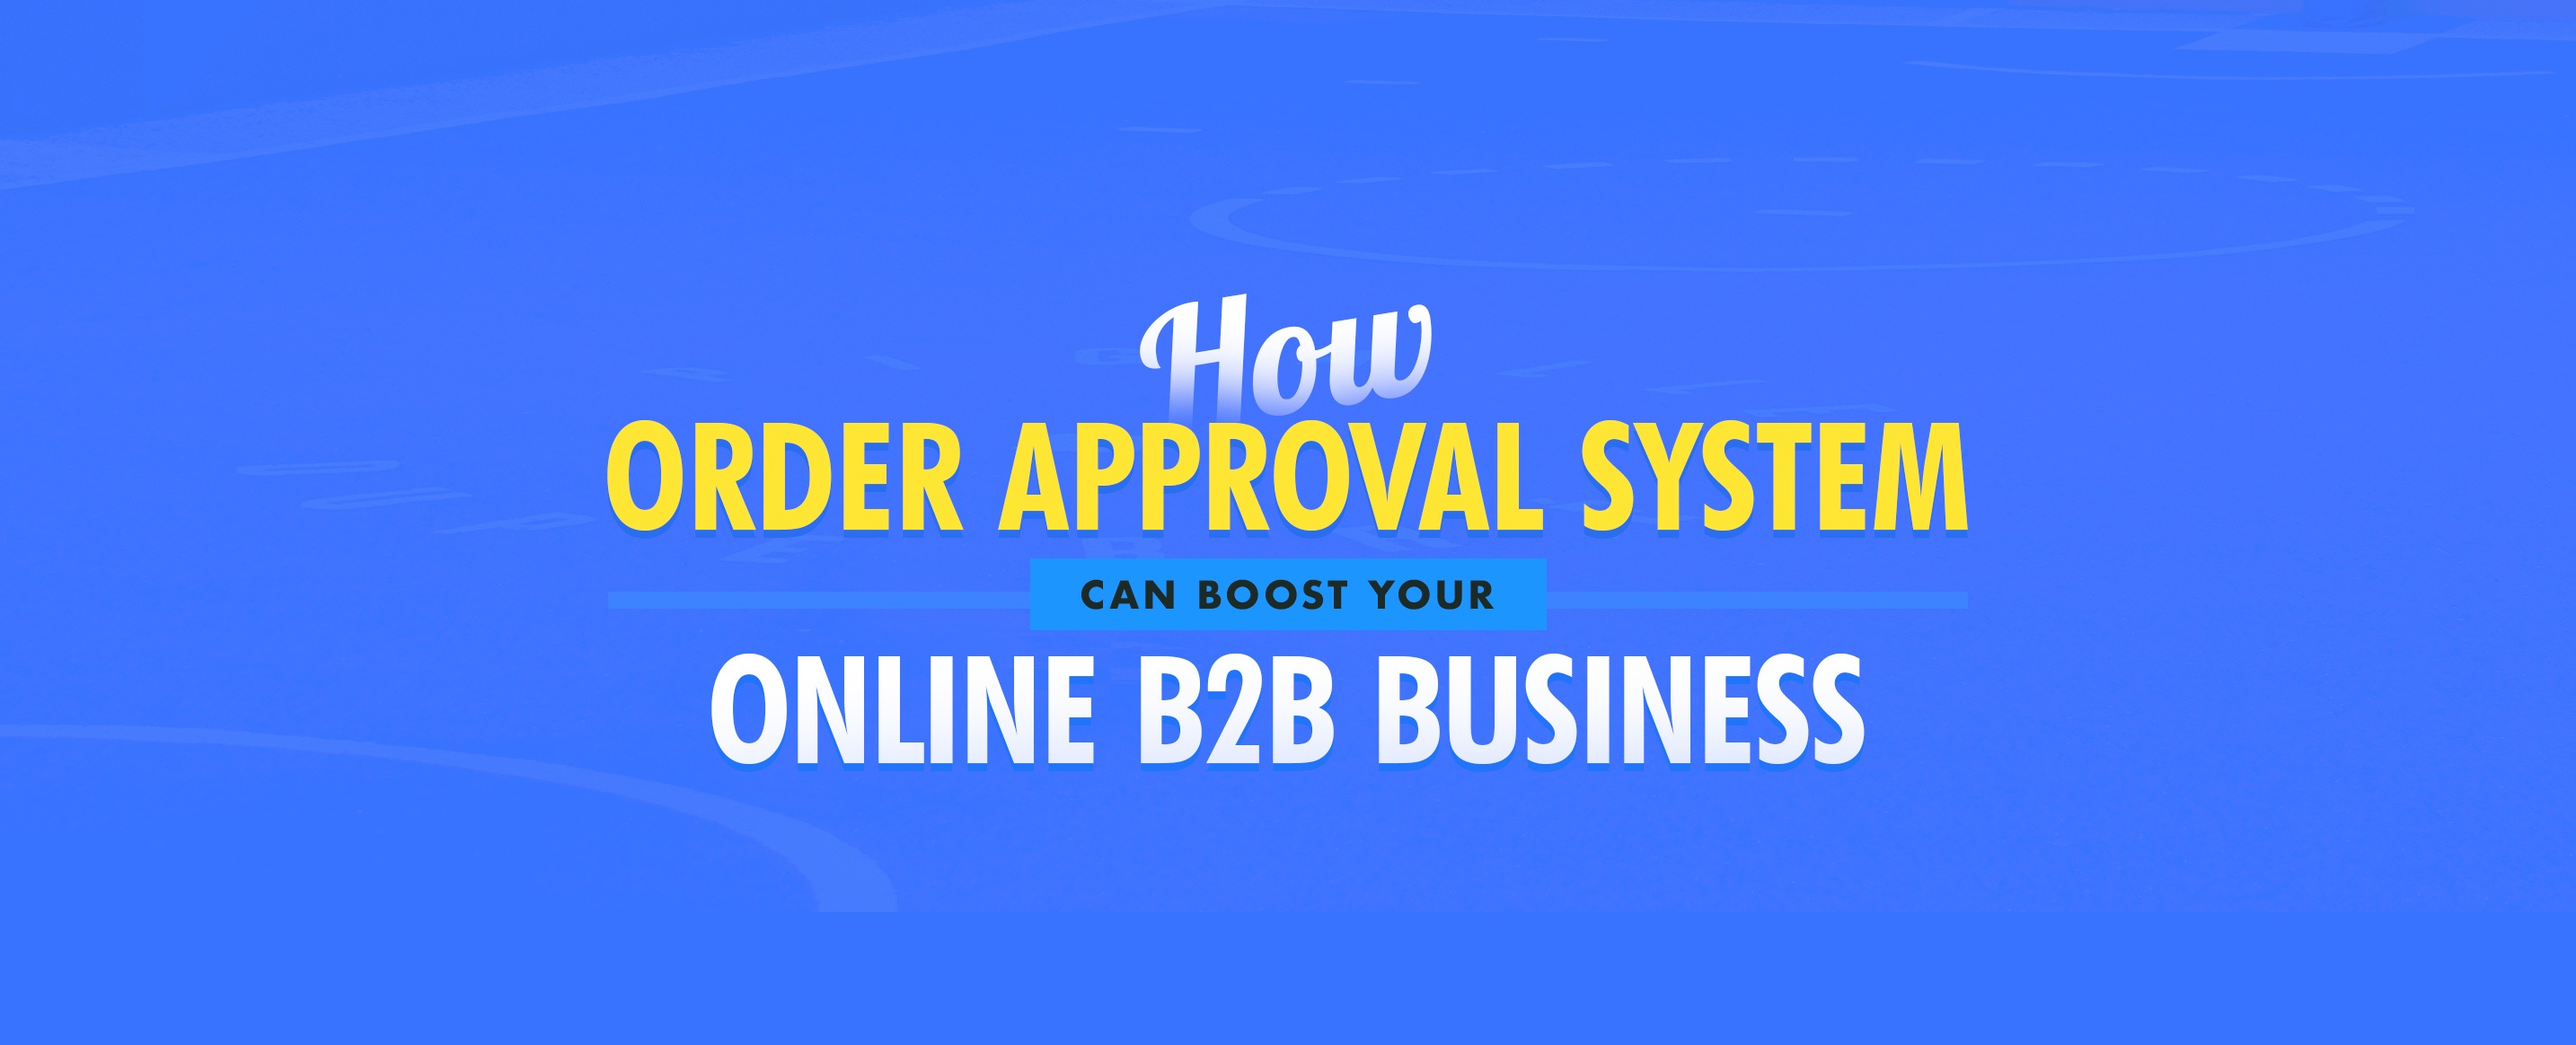 How-Order-Approval-System-can-Boost-your-Online-B2B-Business